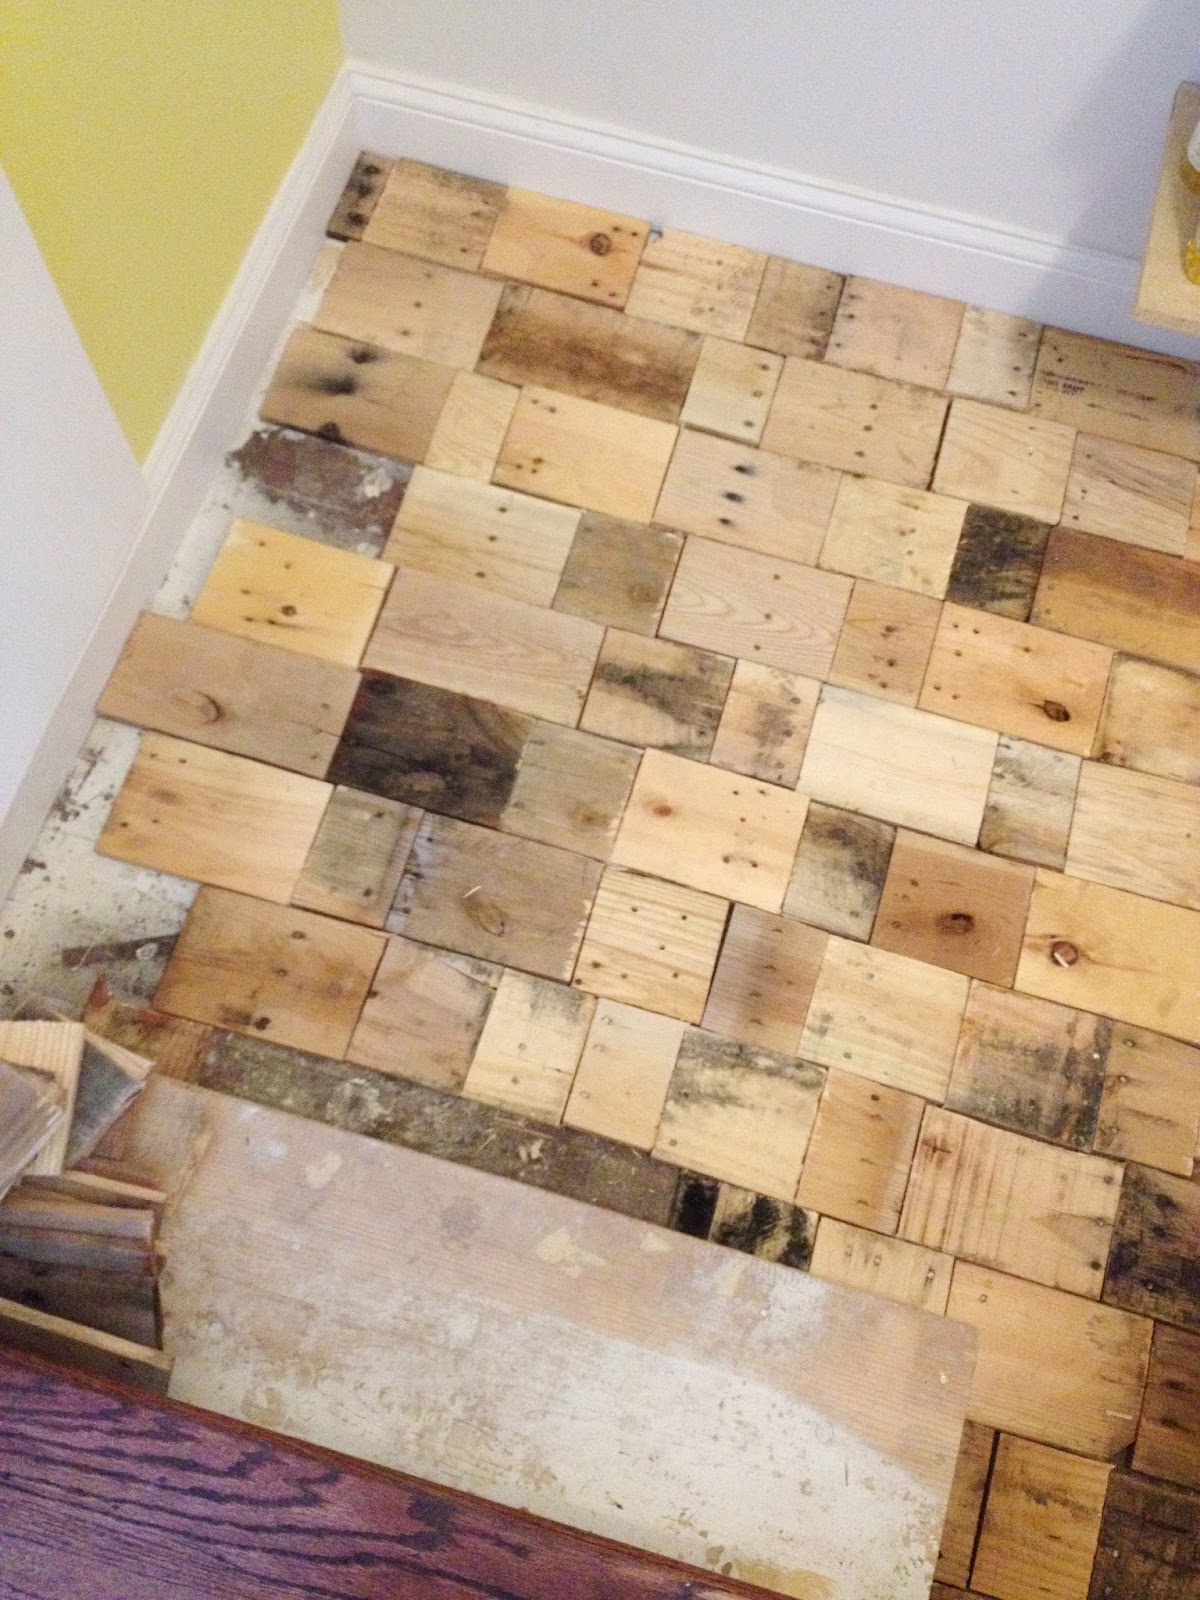 Flipping the Flip: Slow down Saturday but gearing up for floor completion.